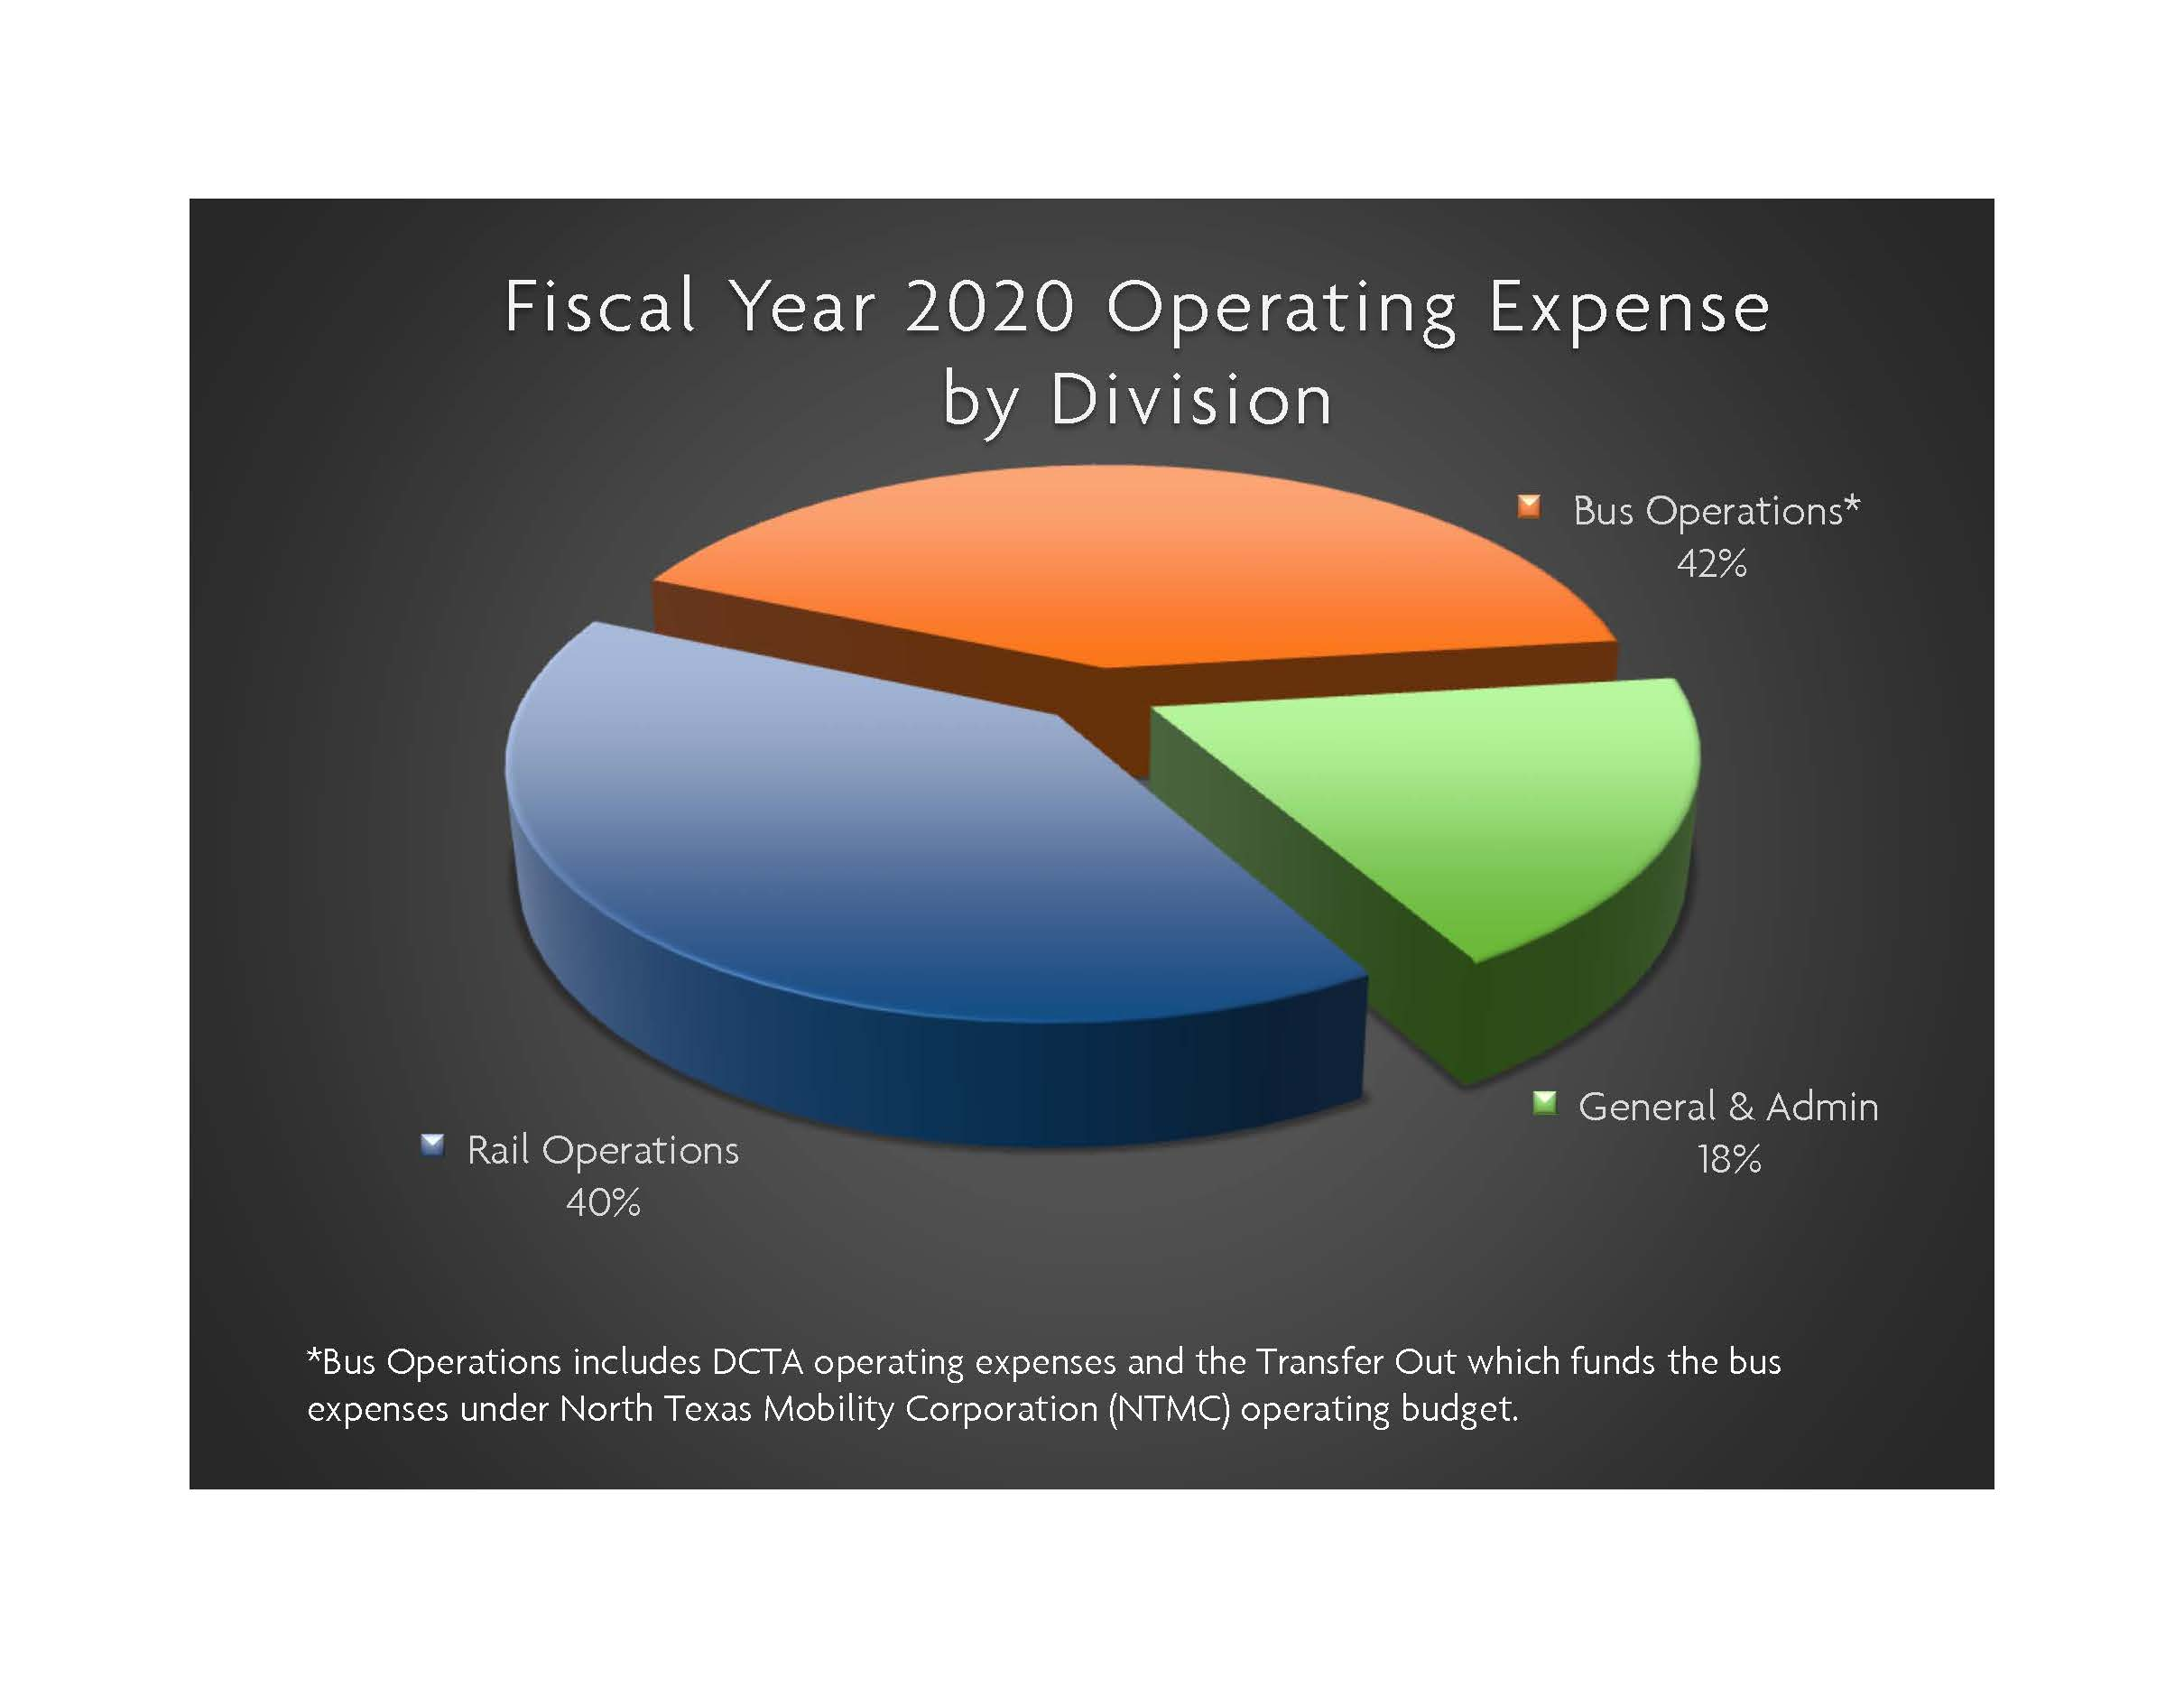 FY20 Operating Expense By Division